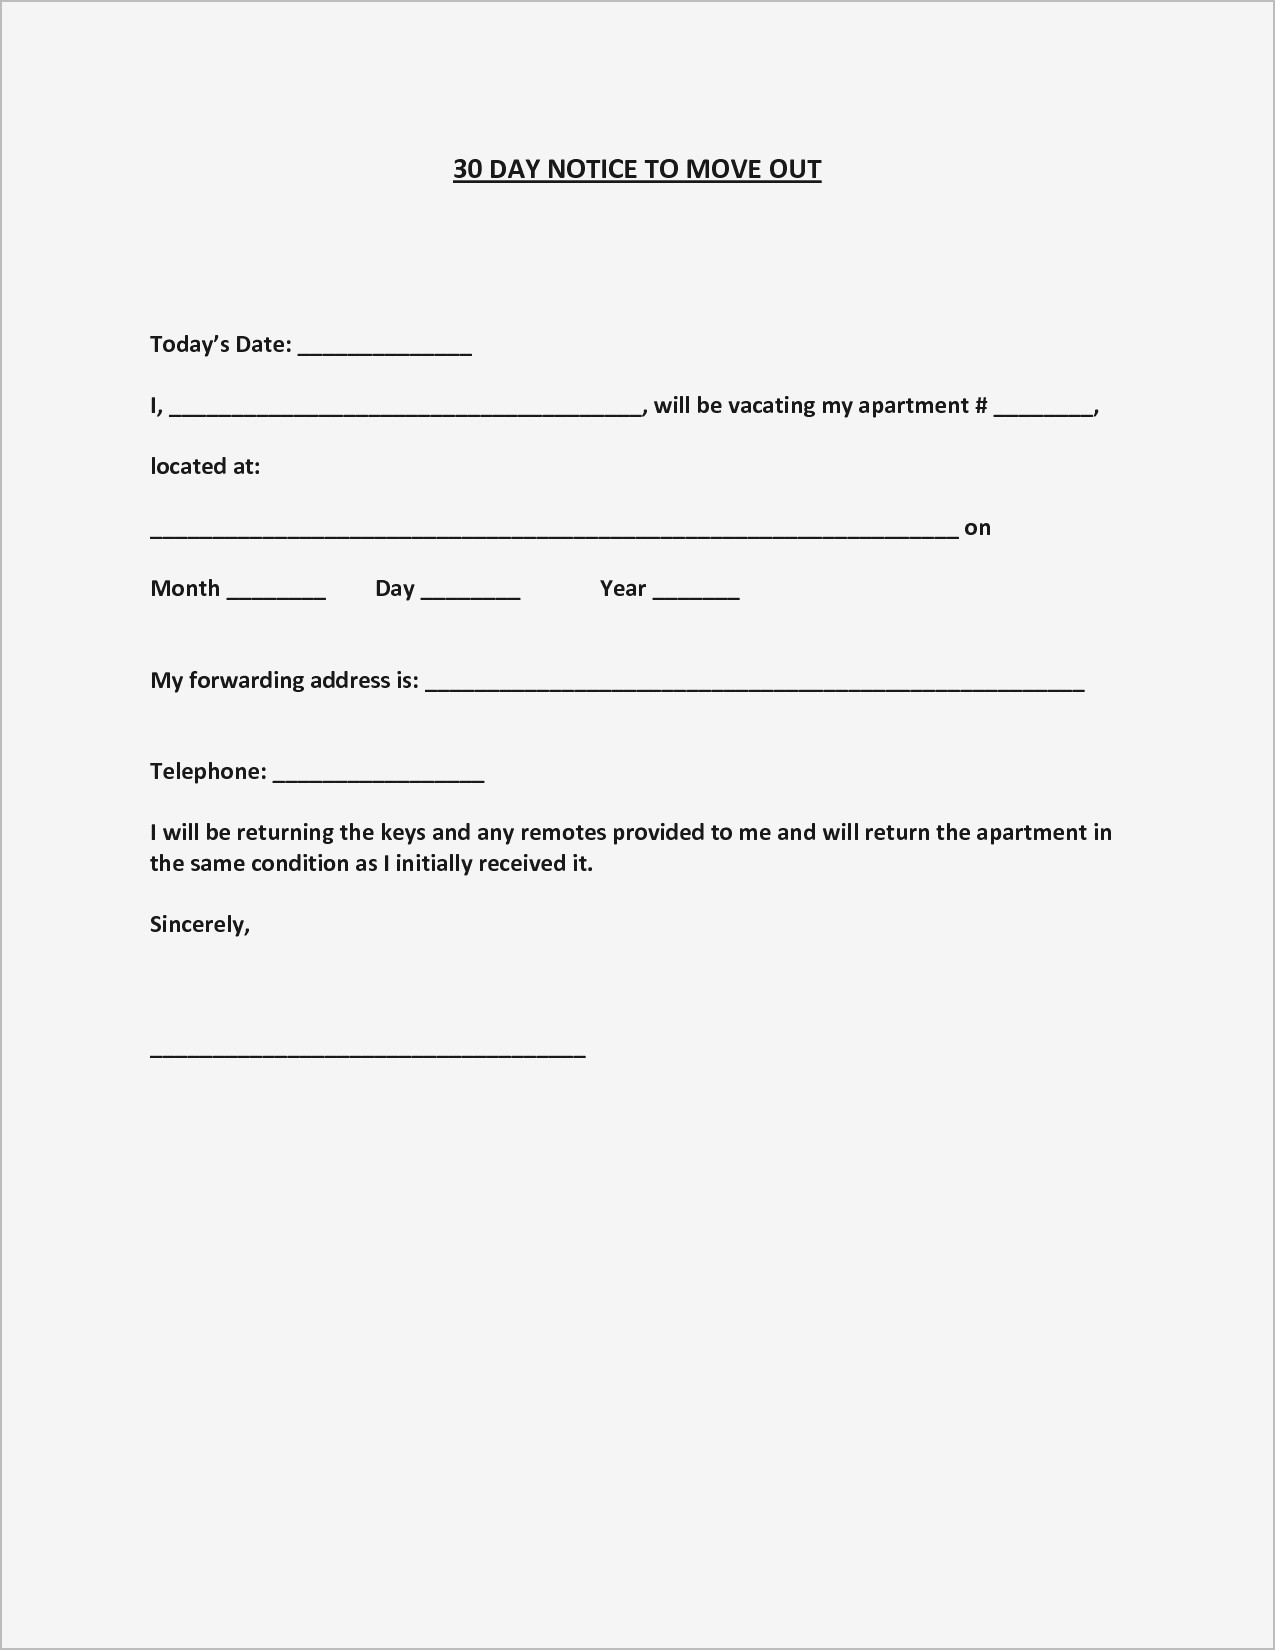 Notarized letter template for residency samples letter cover templates notarized letter template for residency luxury proof residency letter template thecheapjerseys Image collections